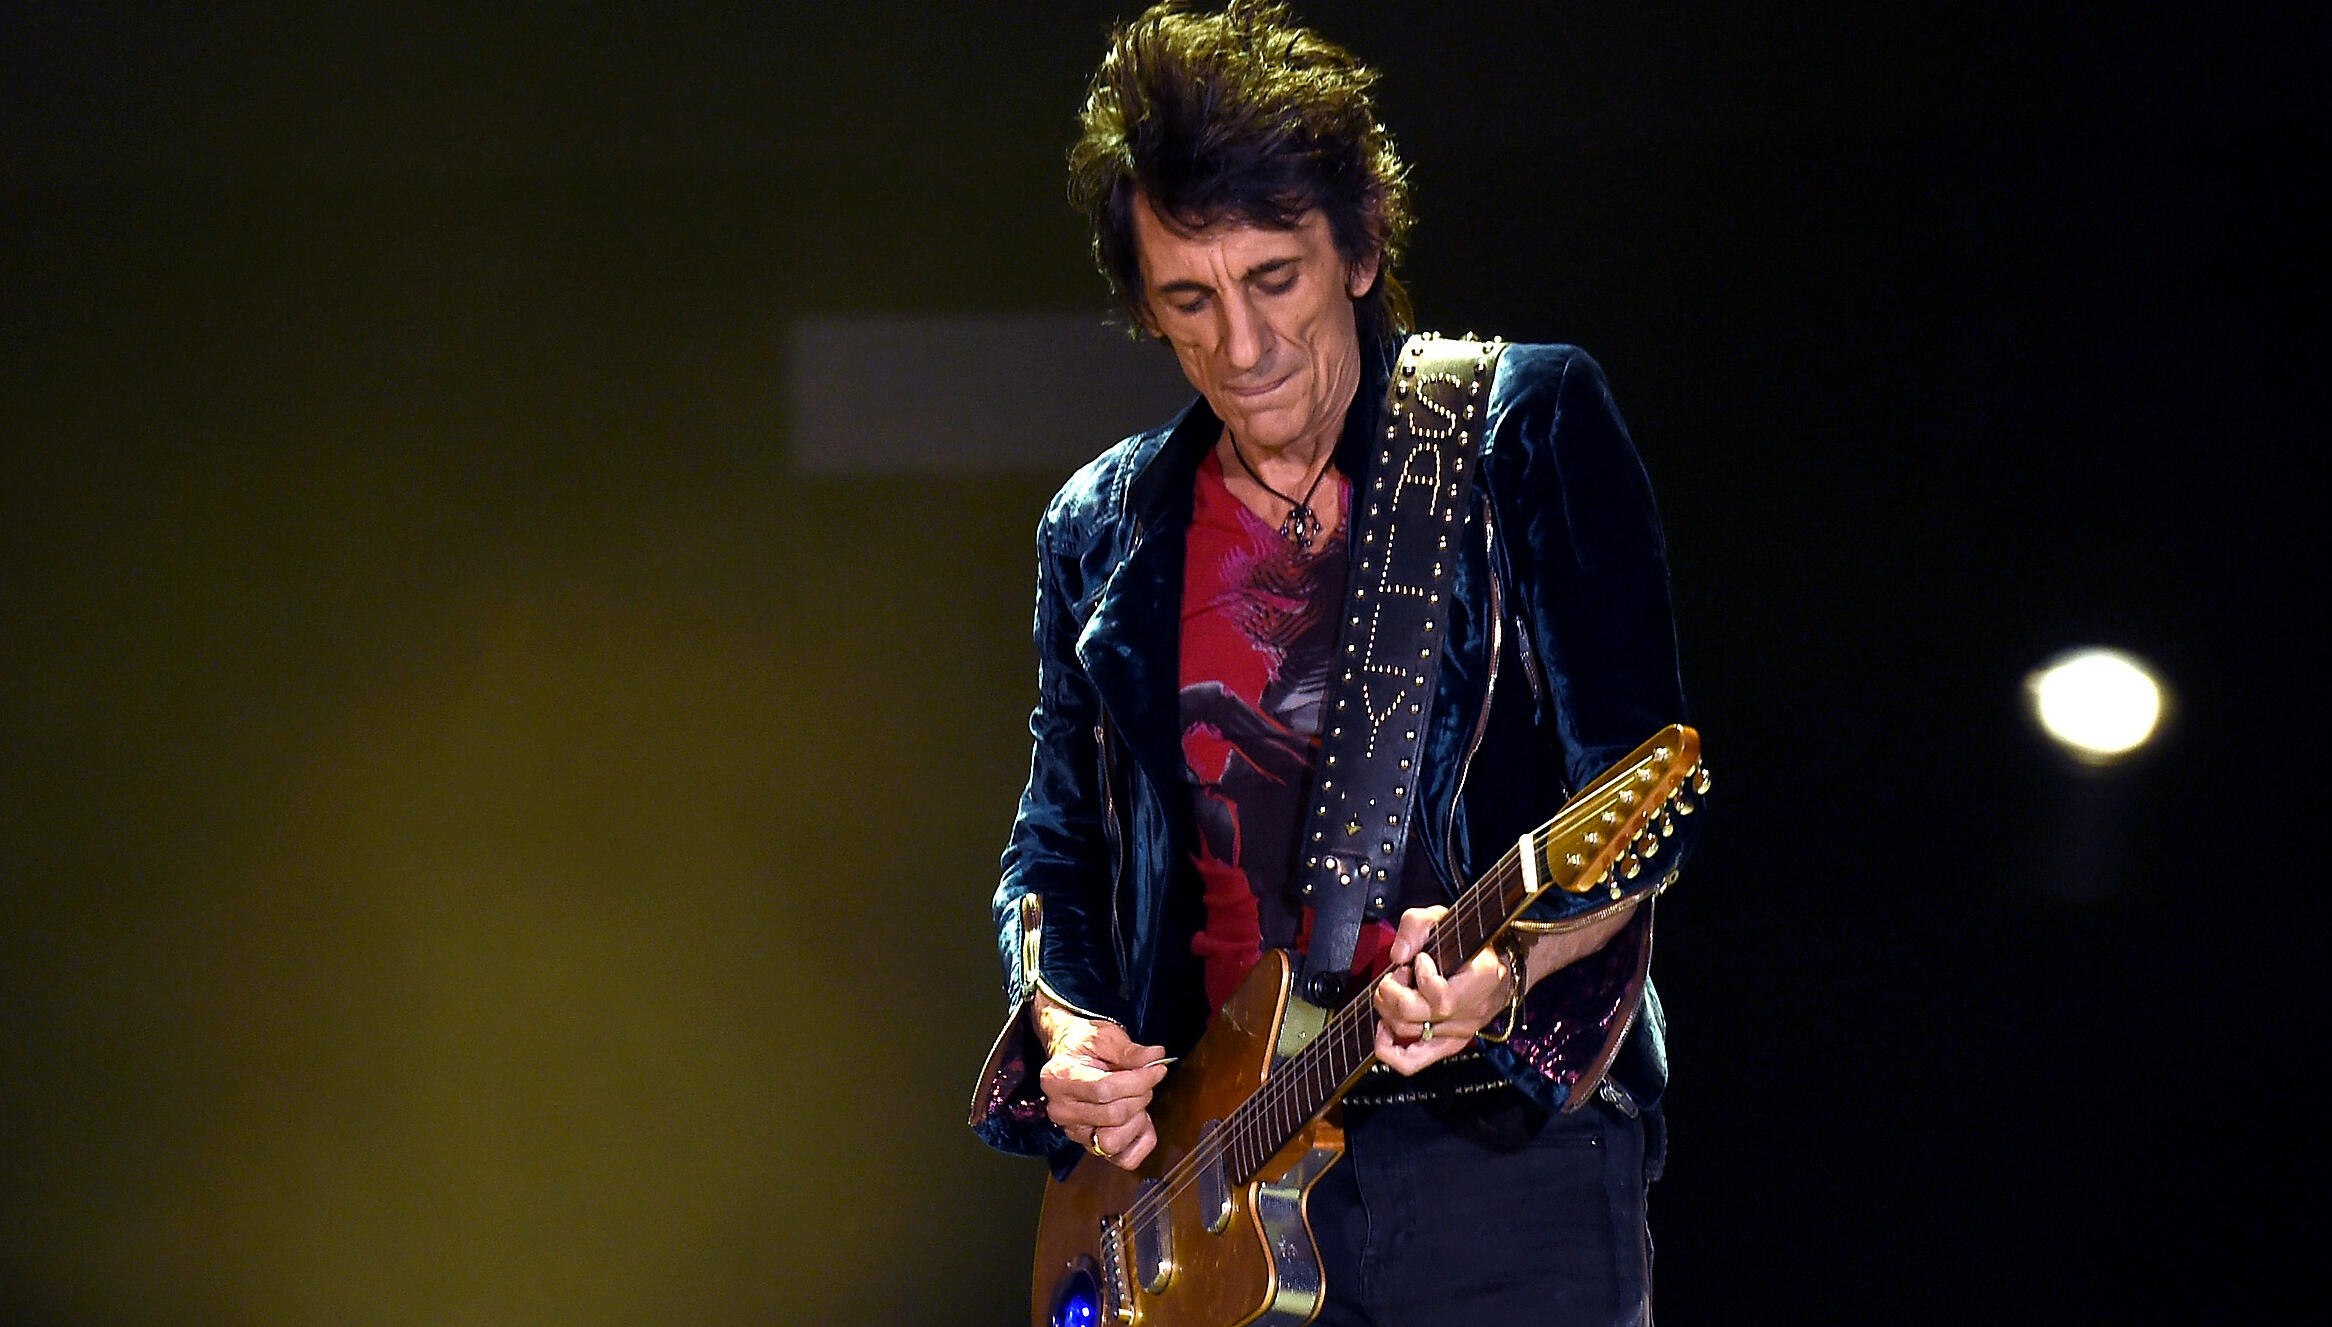 Rolling Stones' Guitarist Ronnie Wood Survived Cancer Again Last Year